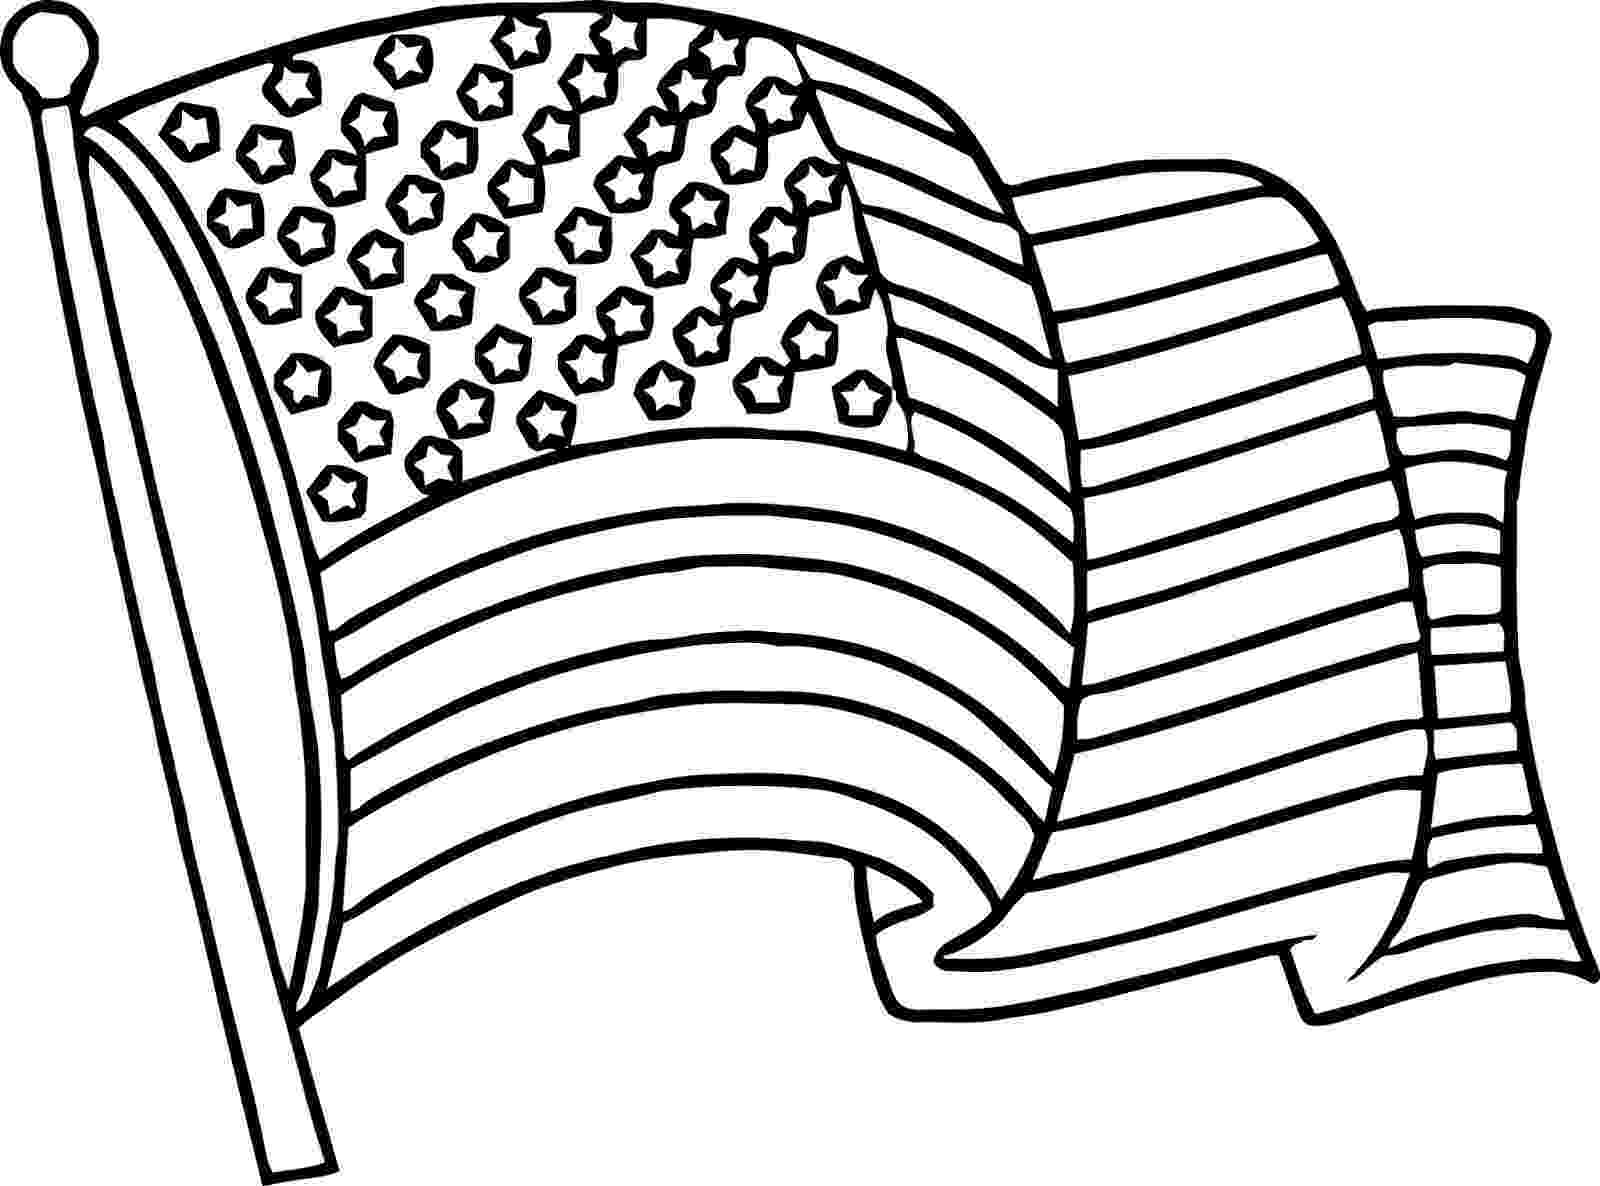 american flag coloring pages american flag coloring page for the love of the country coloring american flag pages